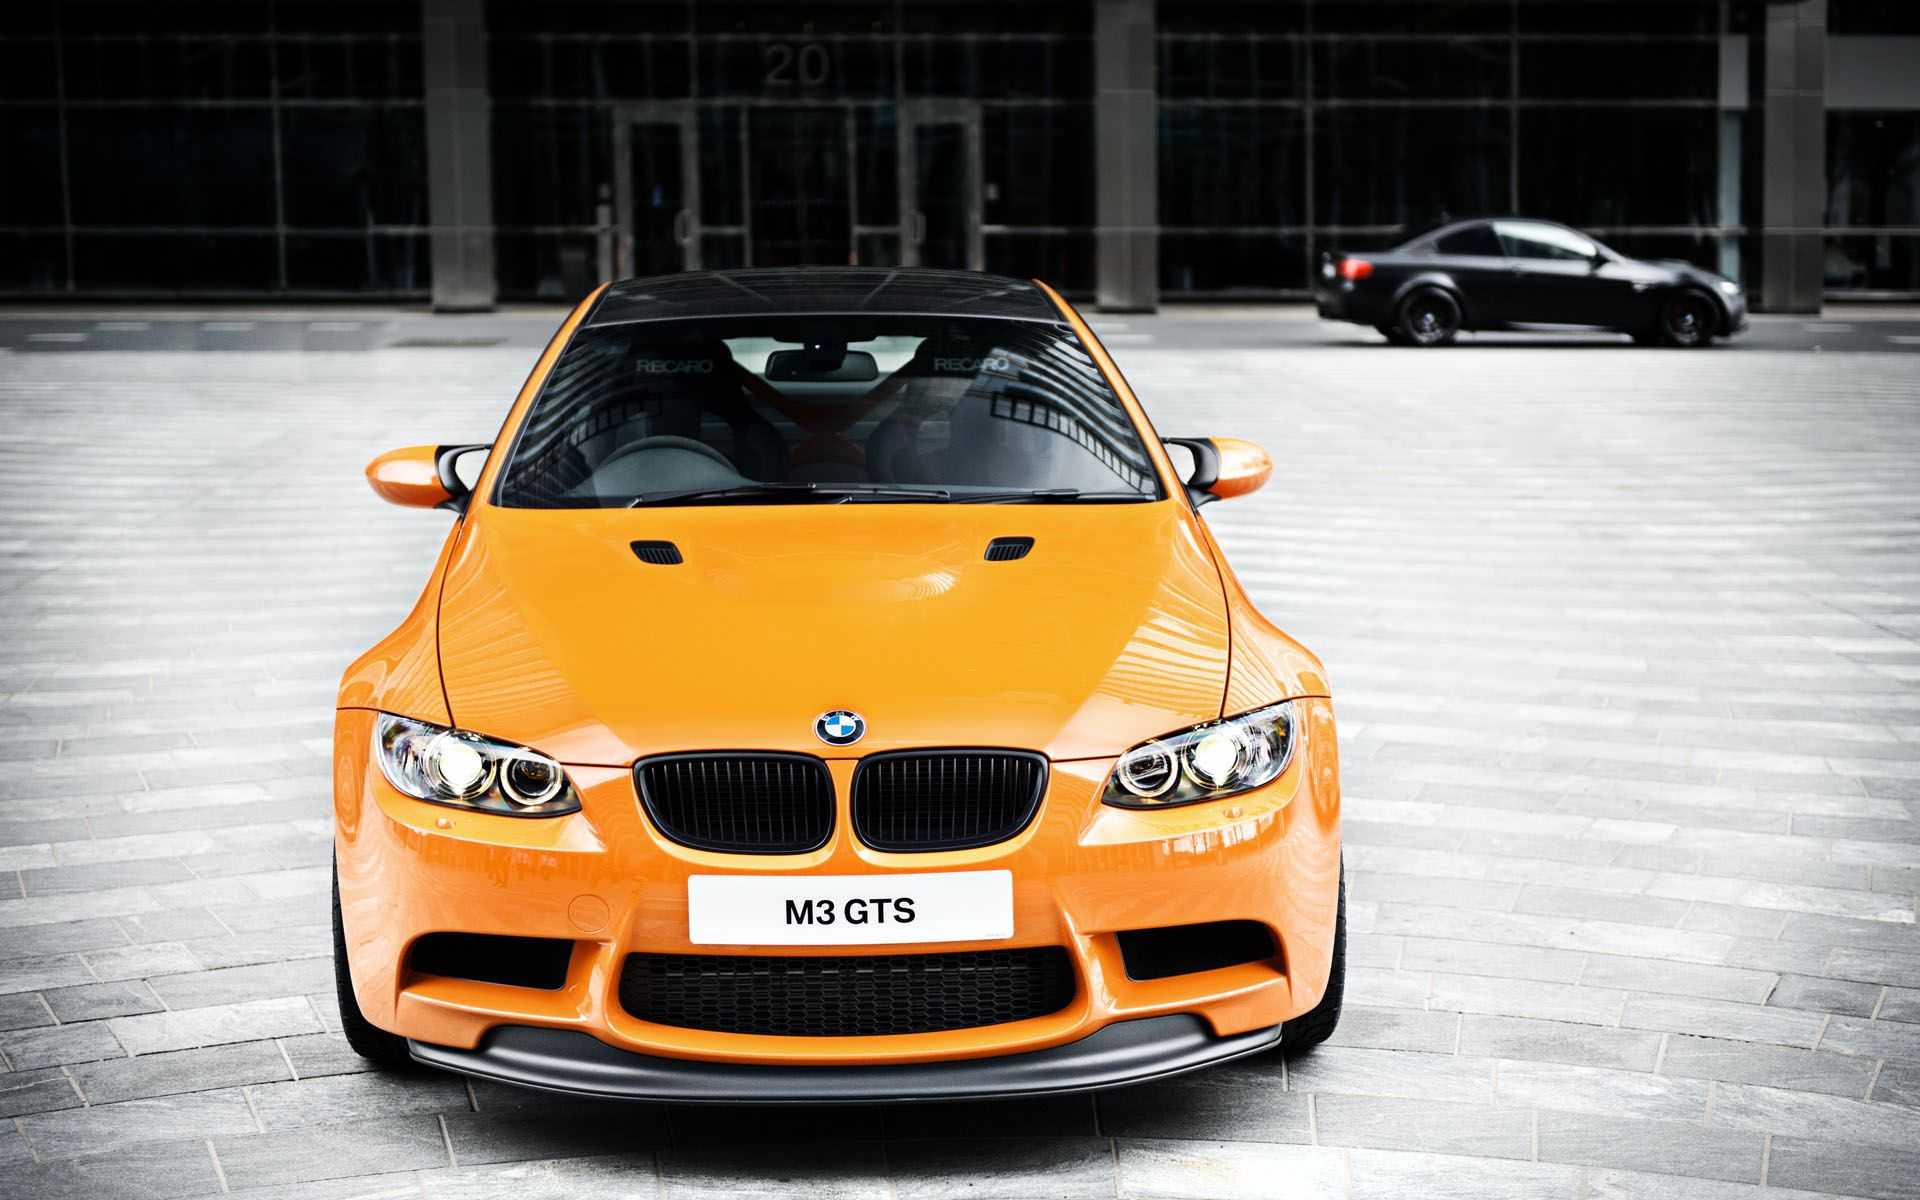 Bmw m3 gts 2 hd wallpapers http www hdcarwallpapers in